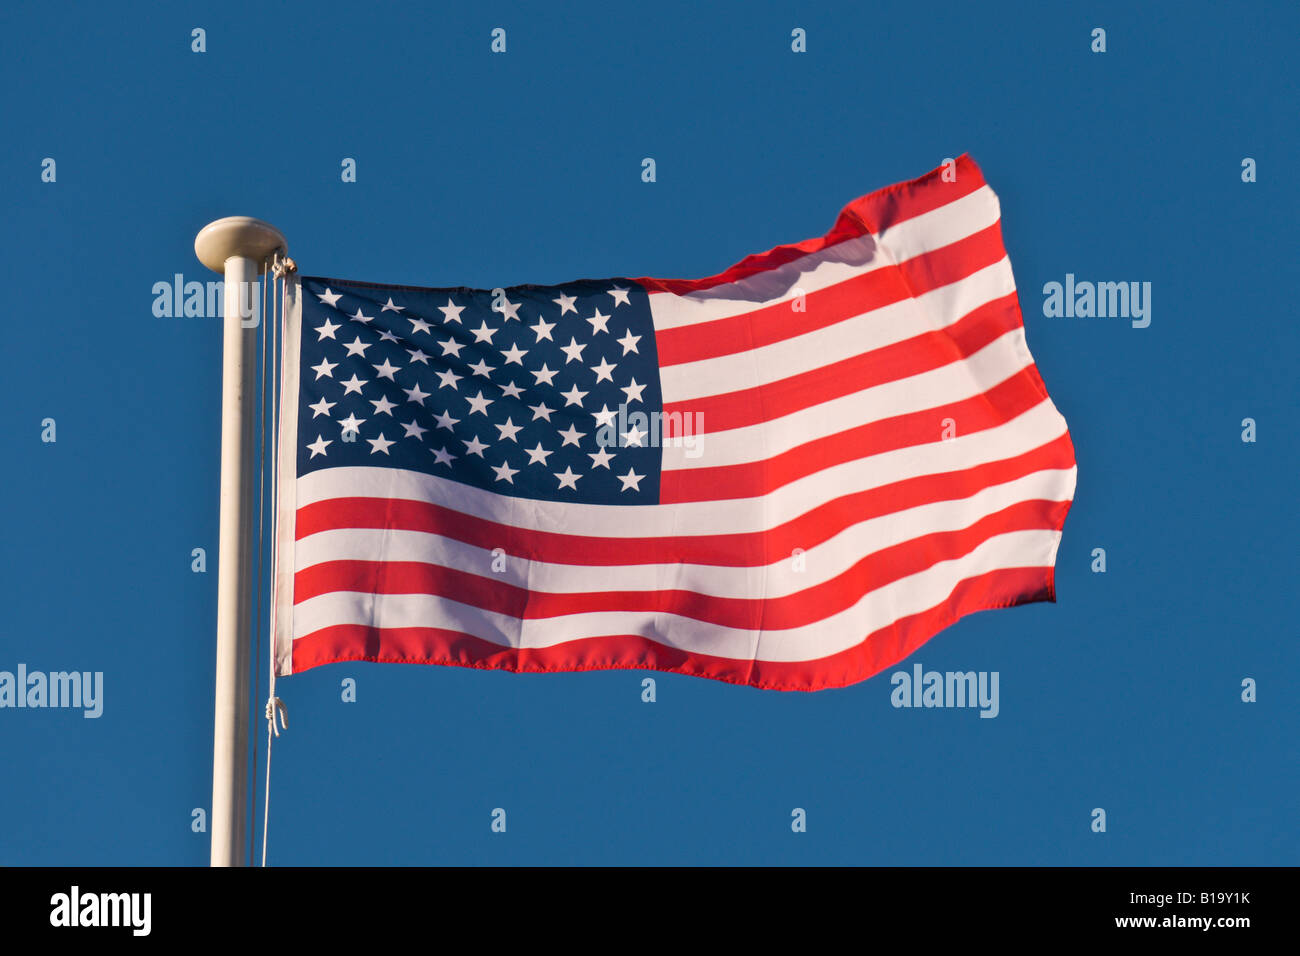 American Flag Blowing In The Wind On A Blue Sky Background. - Stock Image